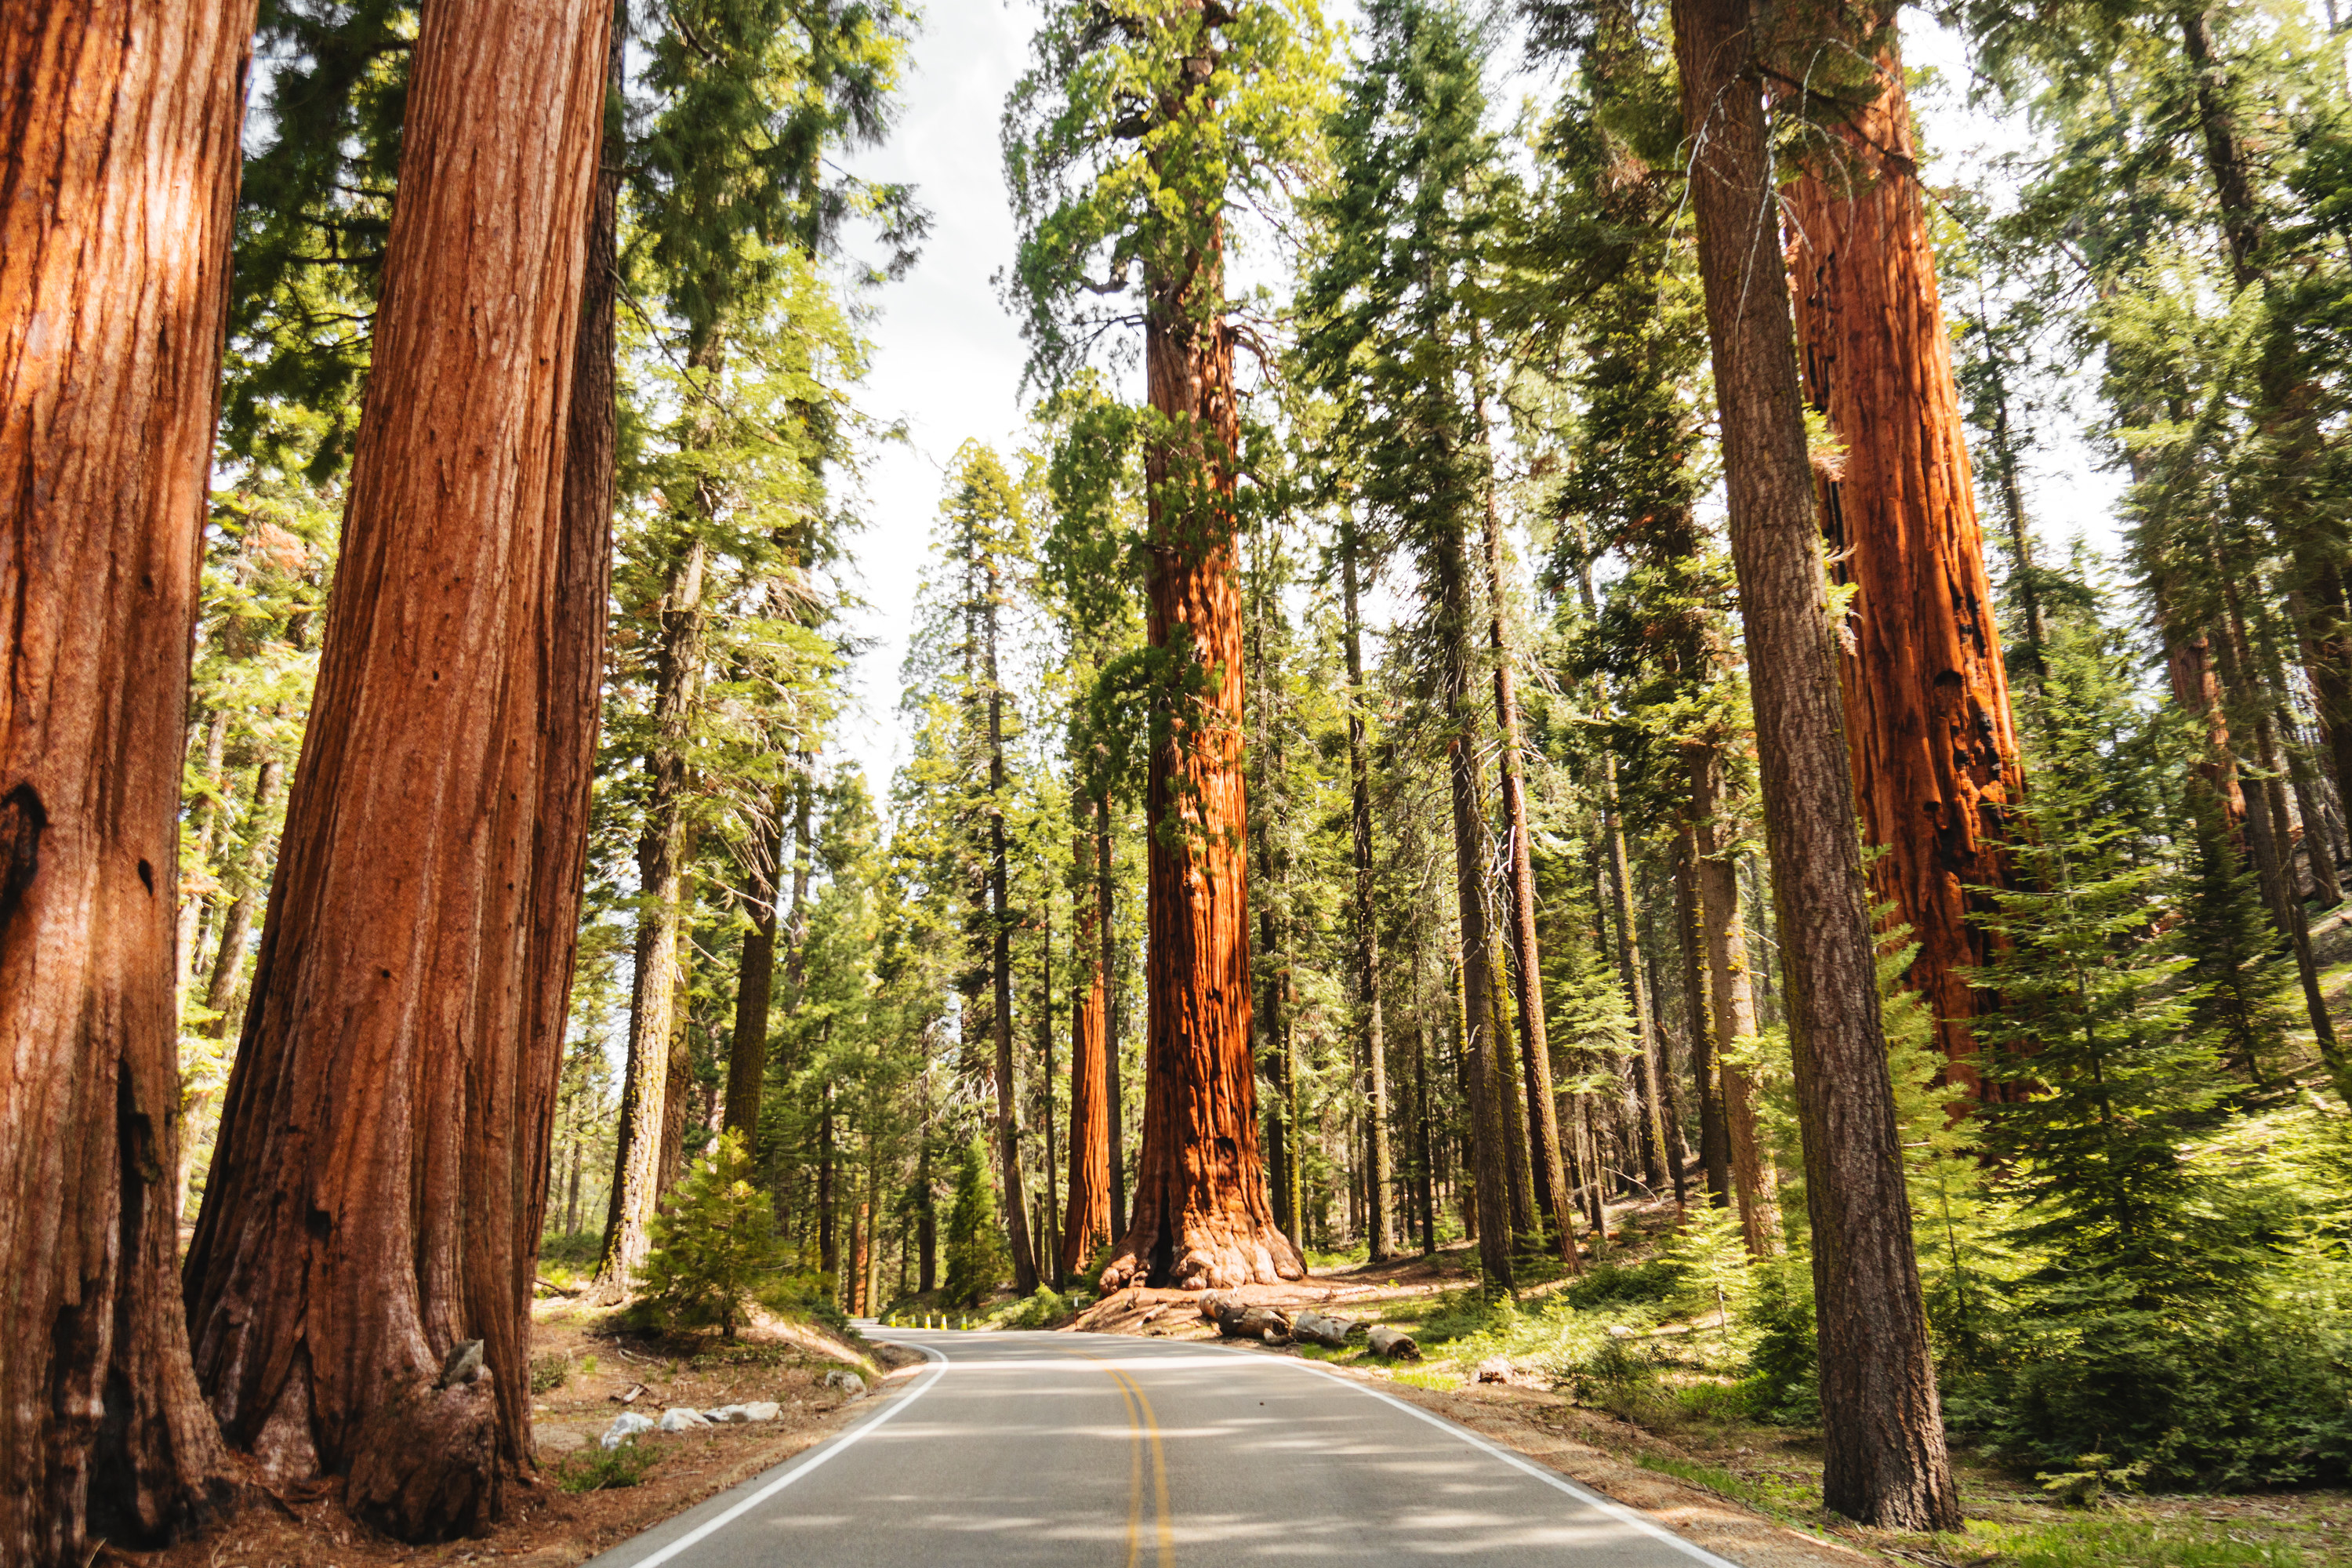 Giant sequoia trees lining a narrow road.